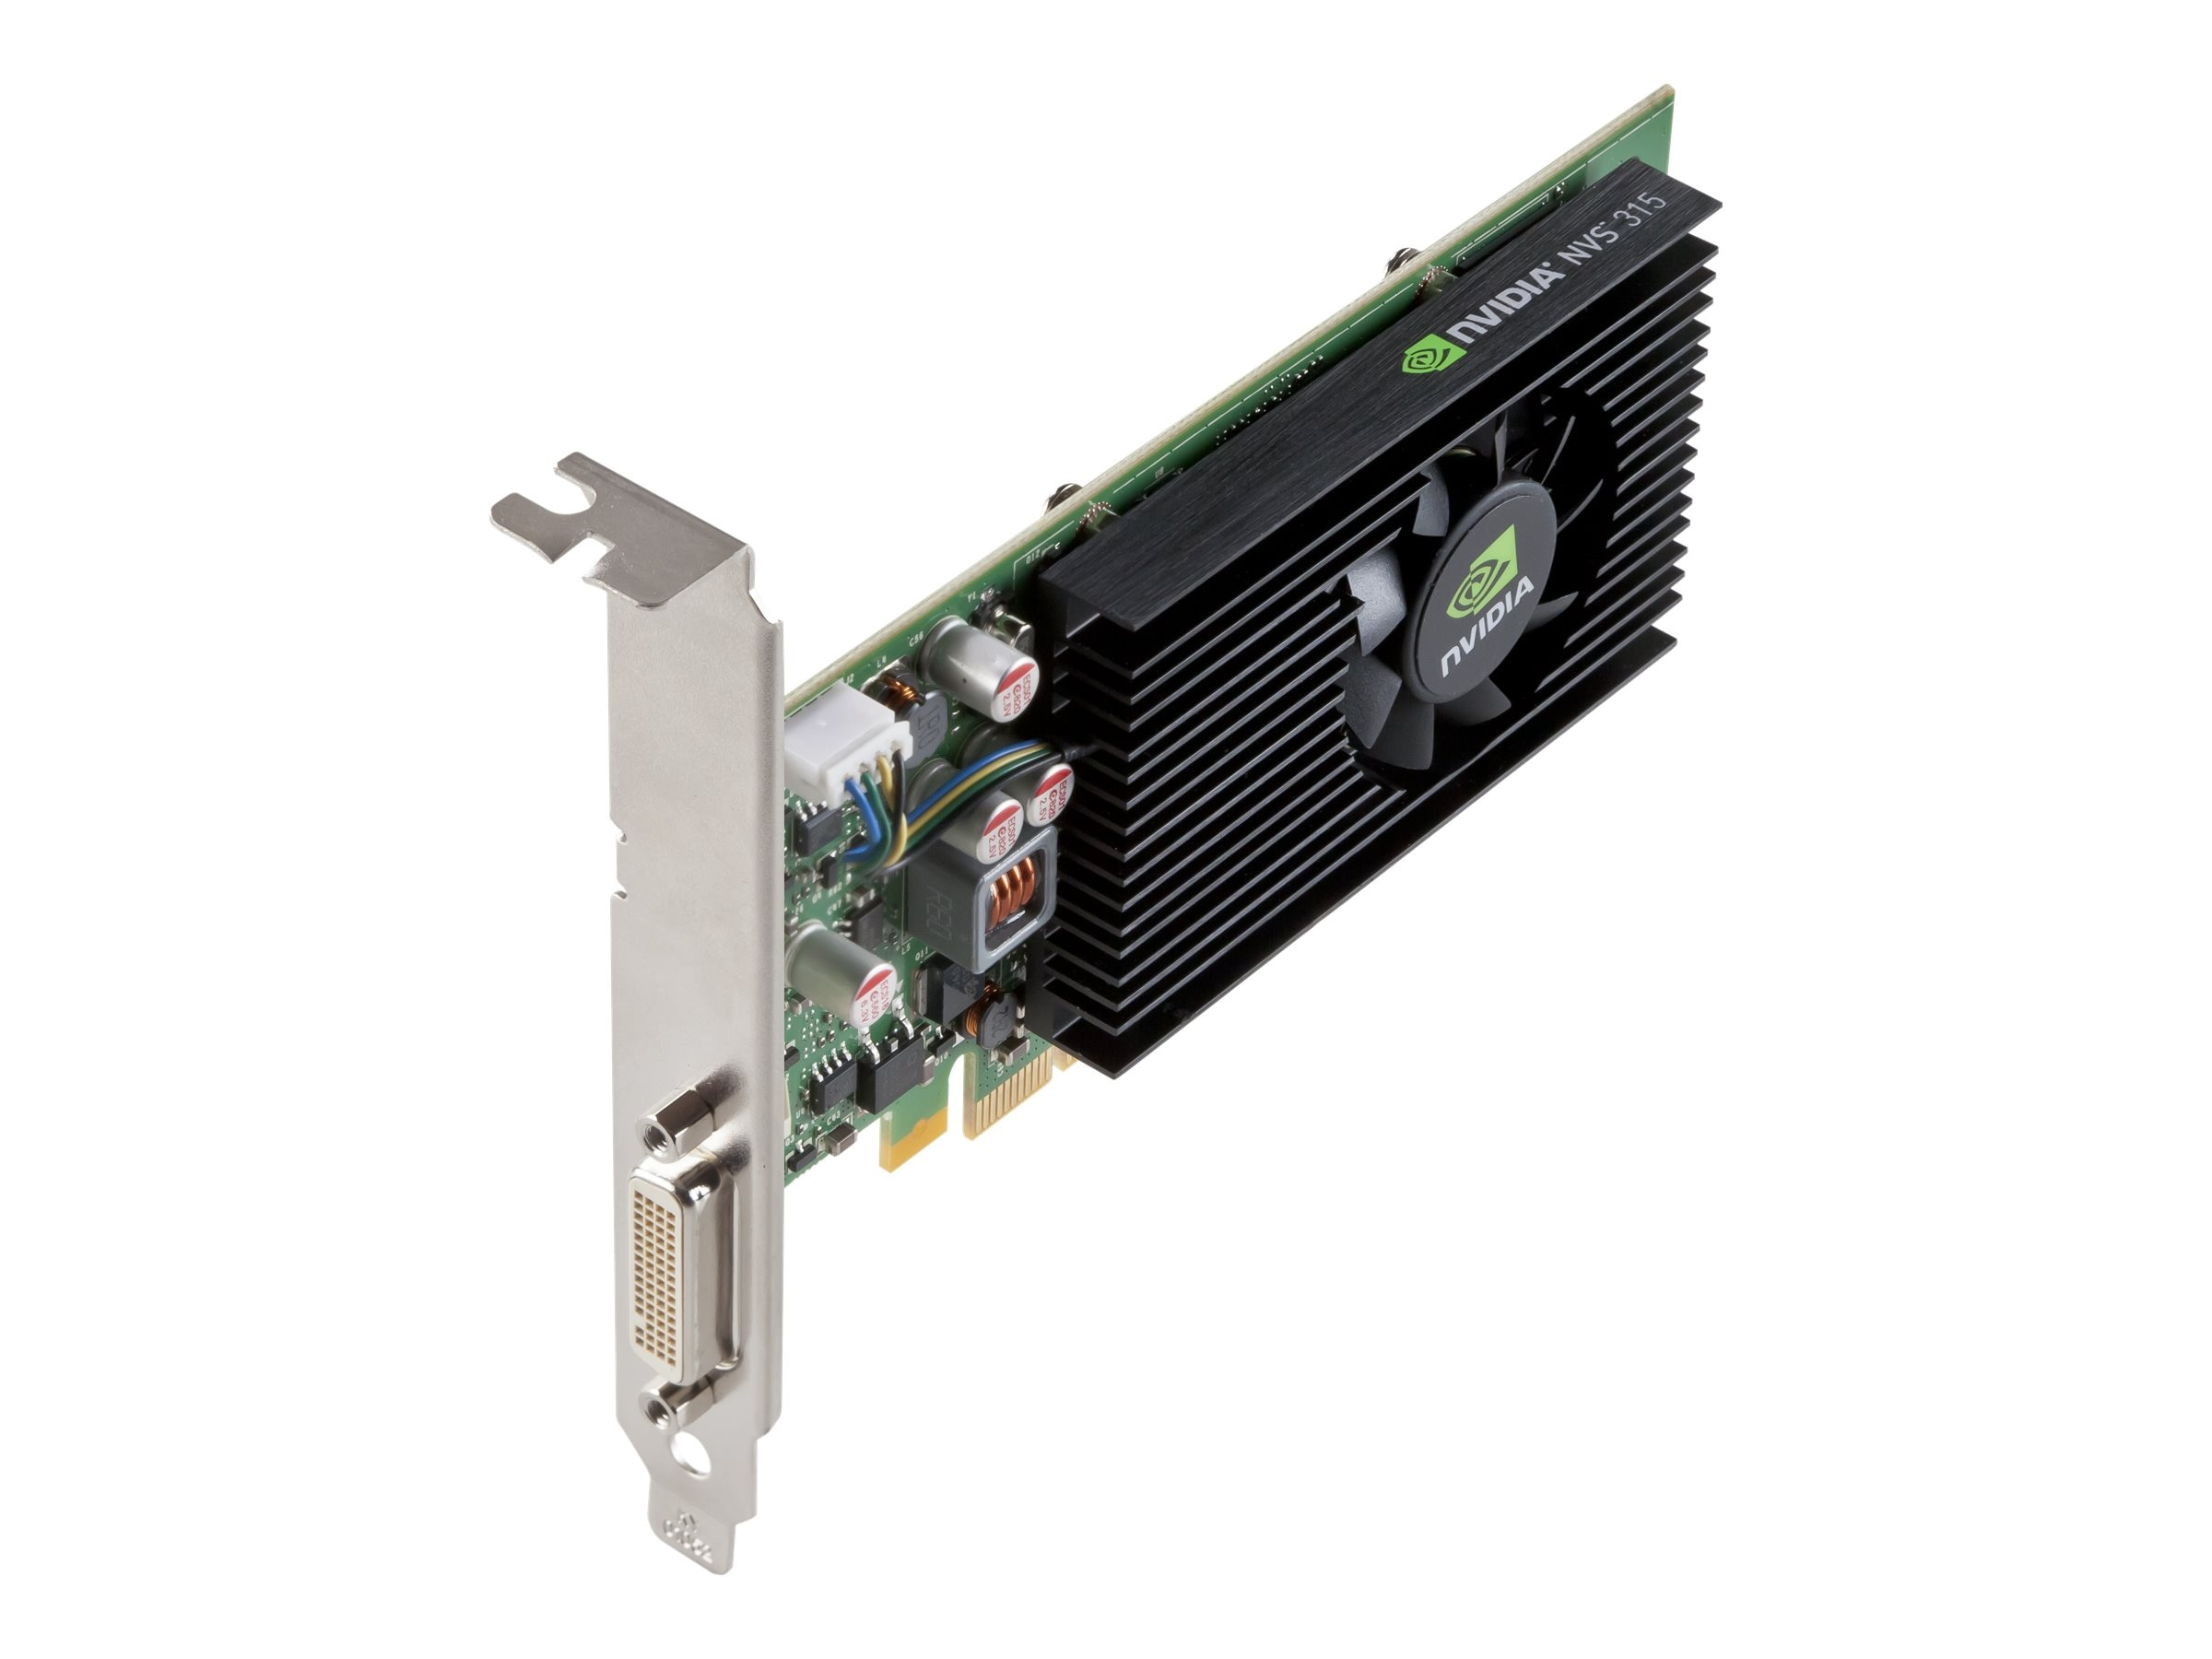 PNY NVIDIA NVS 315 LP PCIe x16 Graphics Card, DMS 59, 1GB